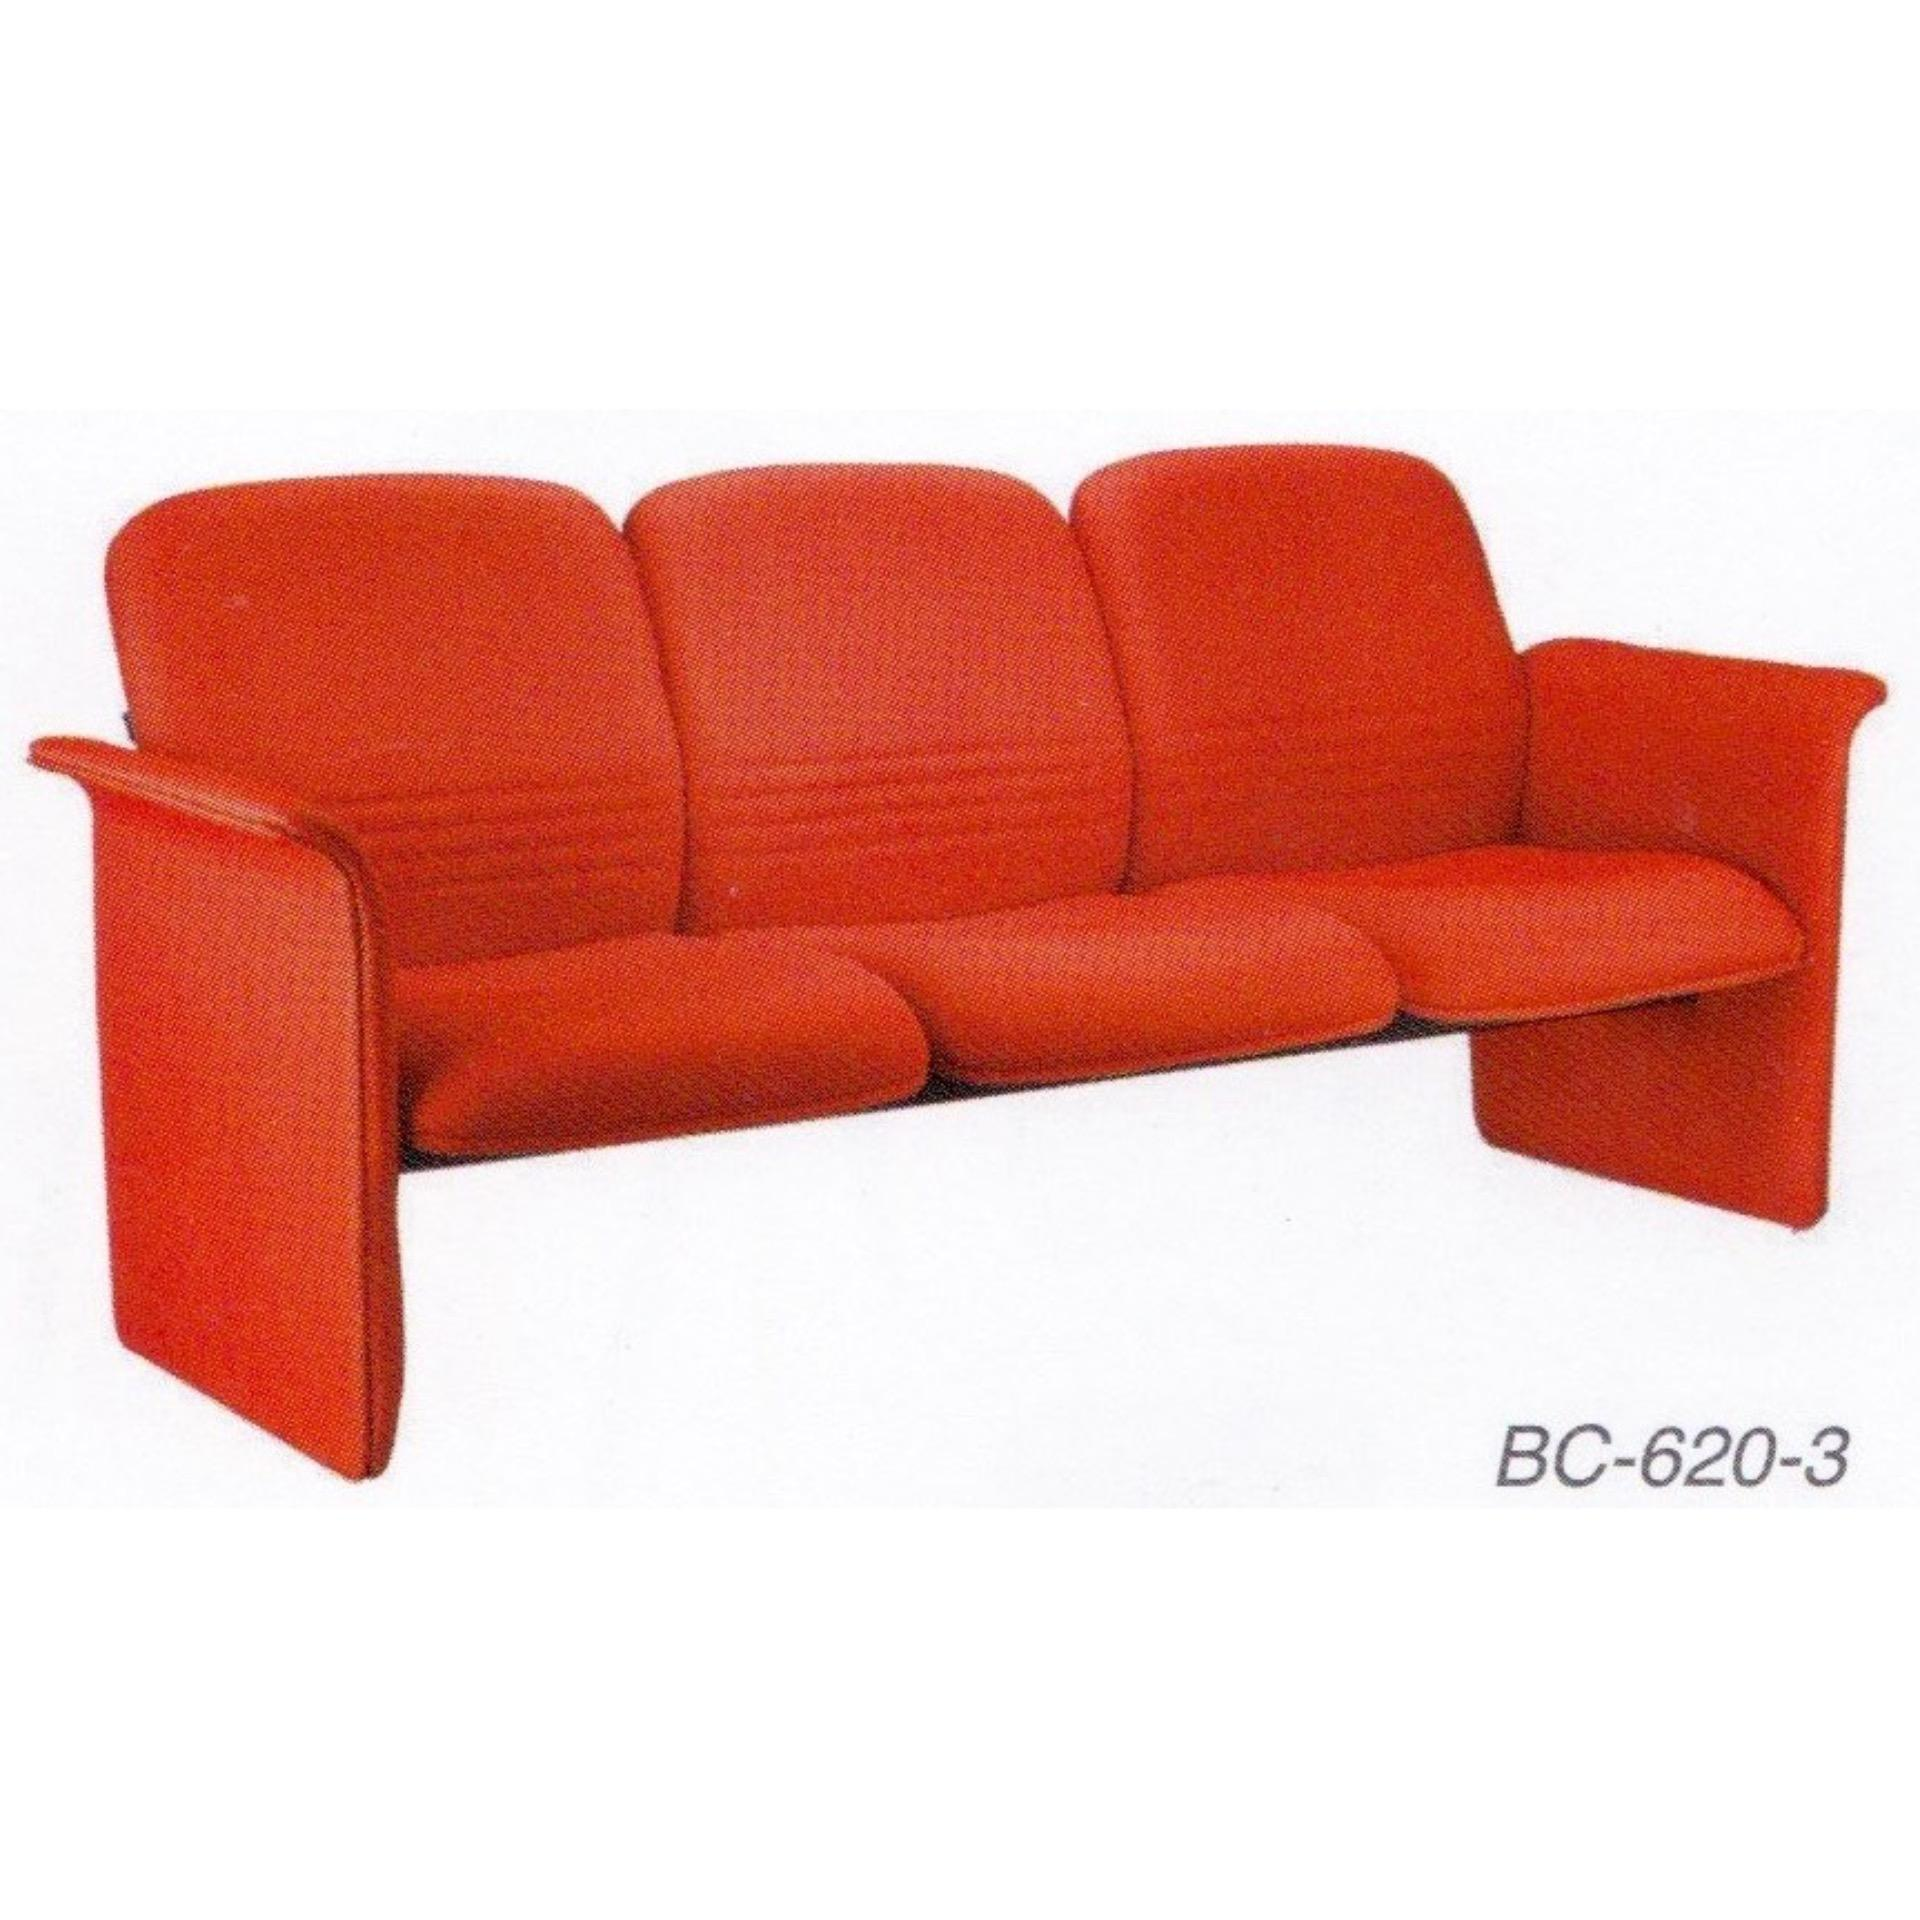 Fantastic Deco Waiting Area 3 Seater Cushion Link Chair Hall Clinics Office Red Pabps2019 Chair Design Images Pabps2019Com